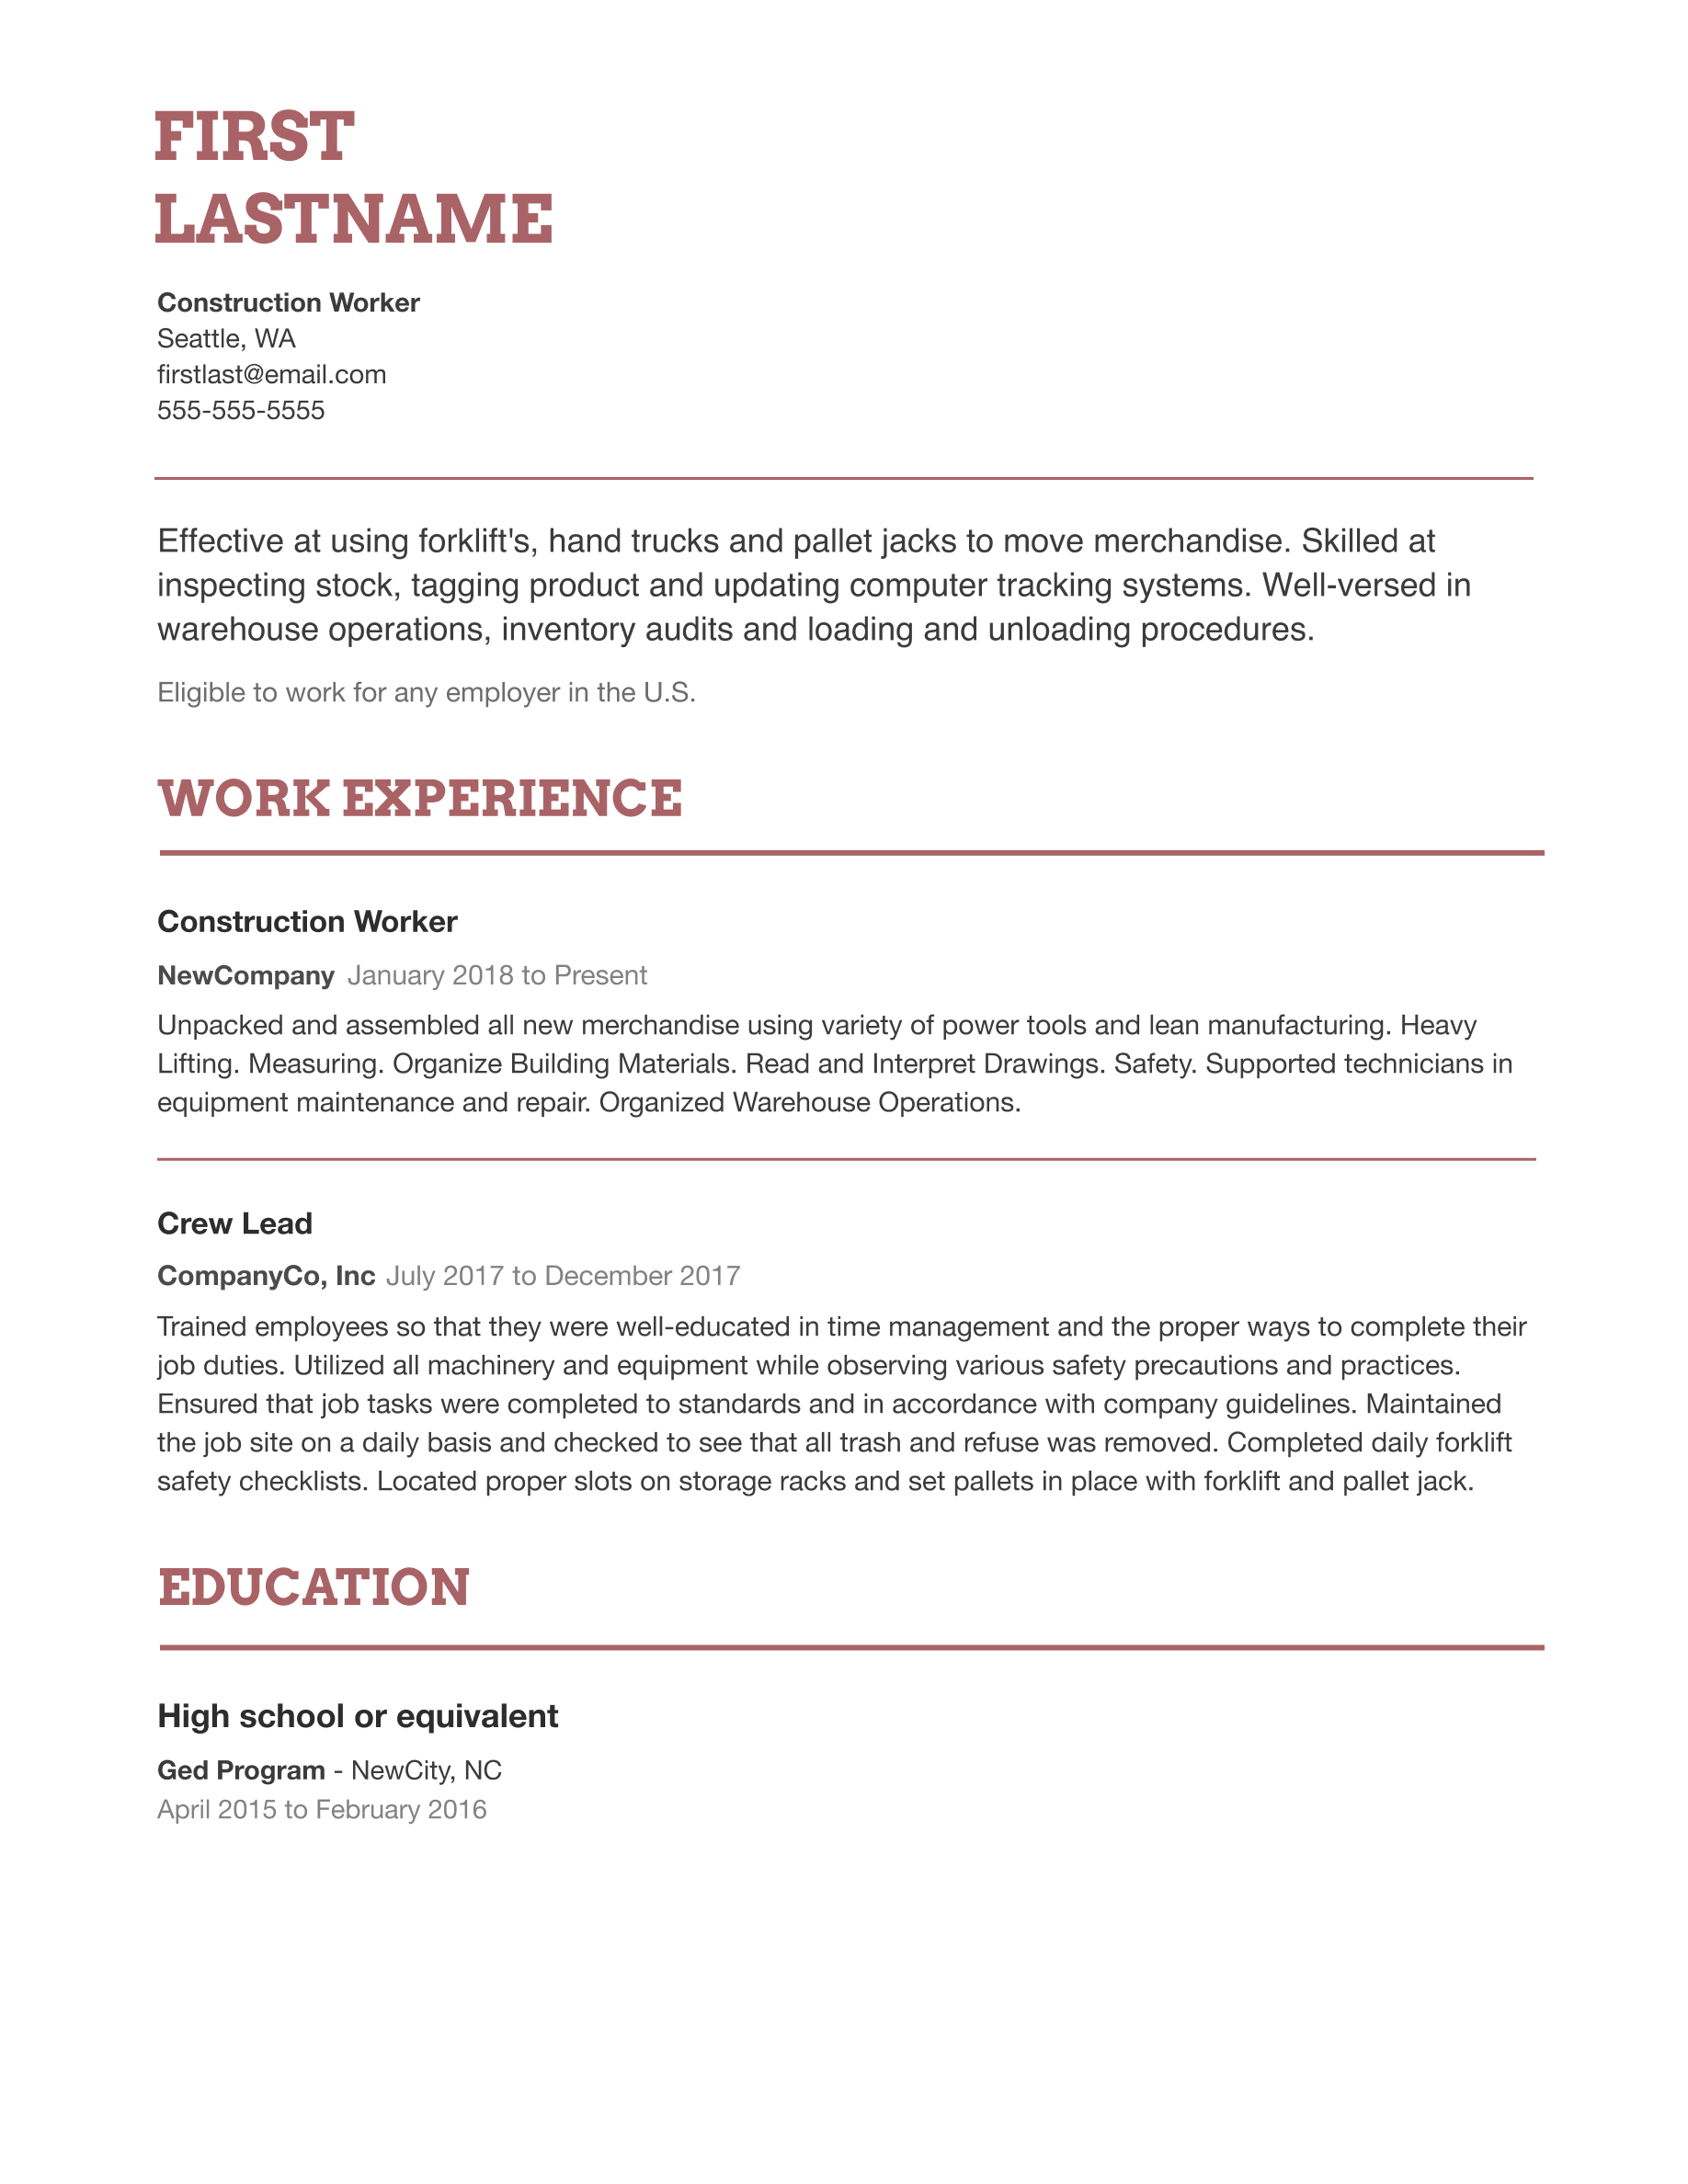 Free Professional Resume Templates in 2020